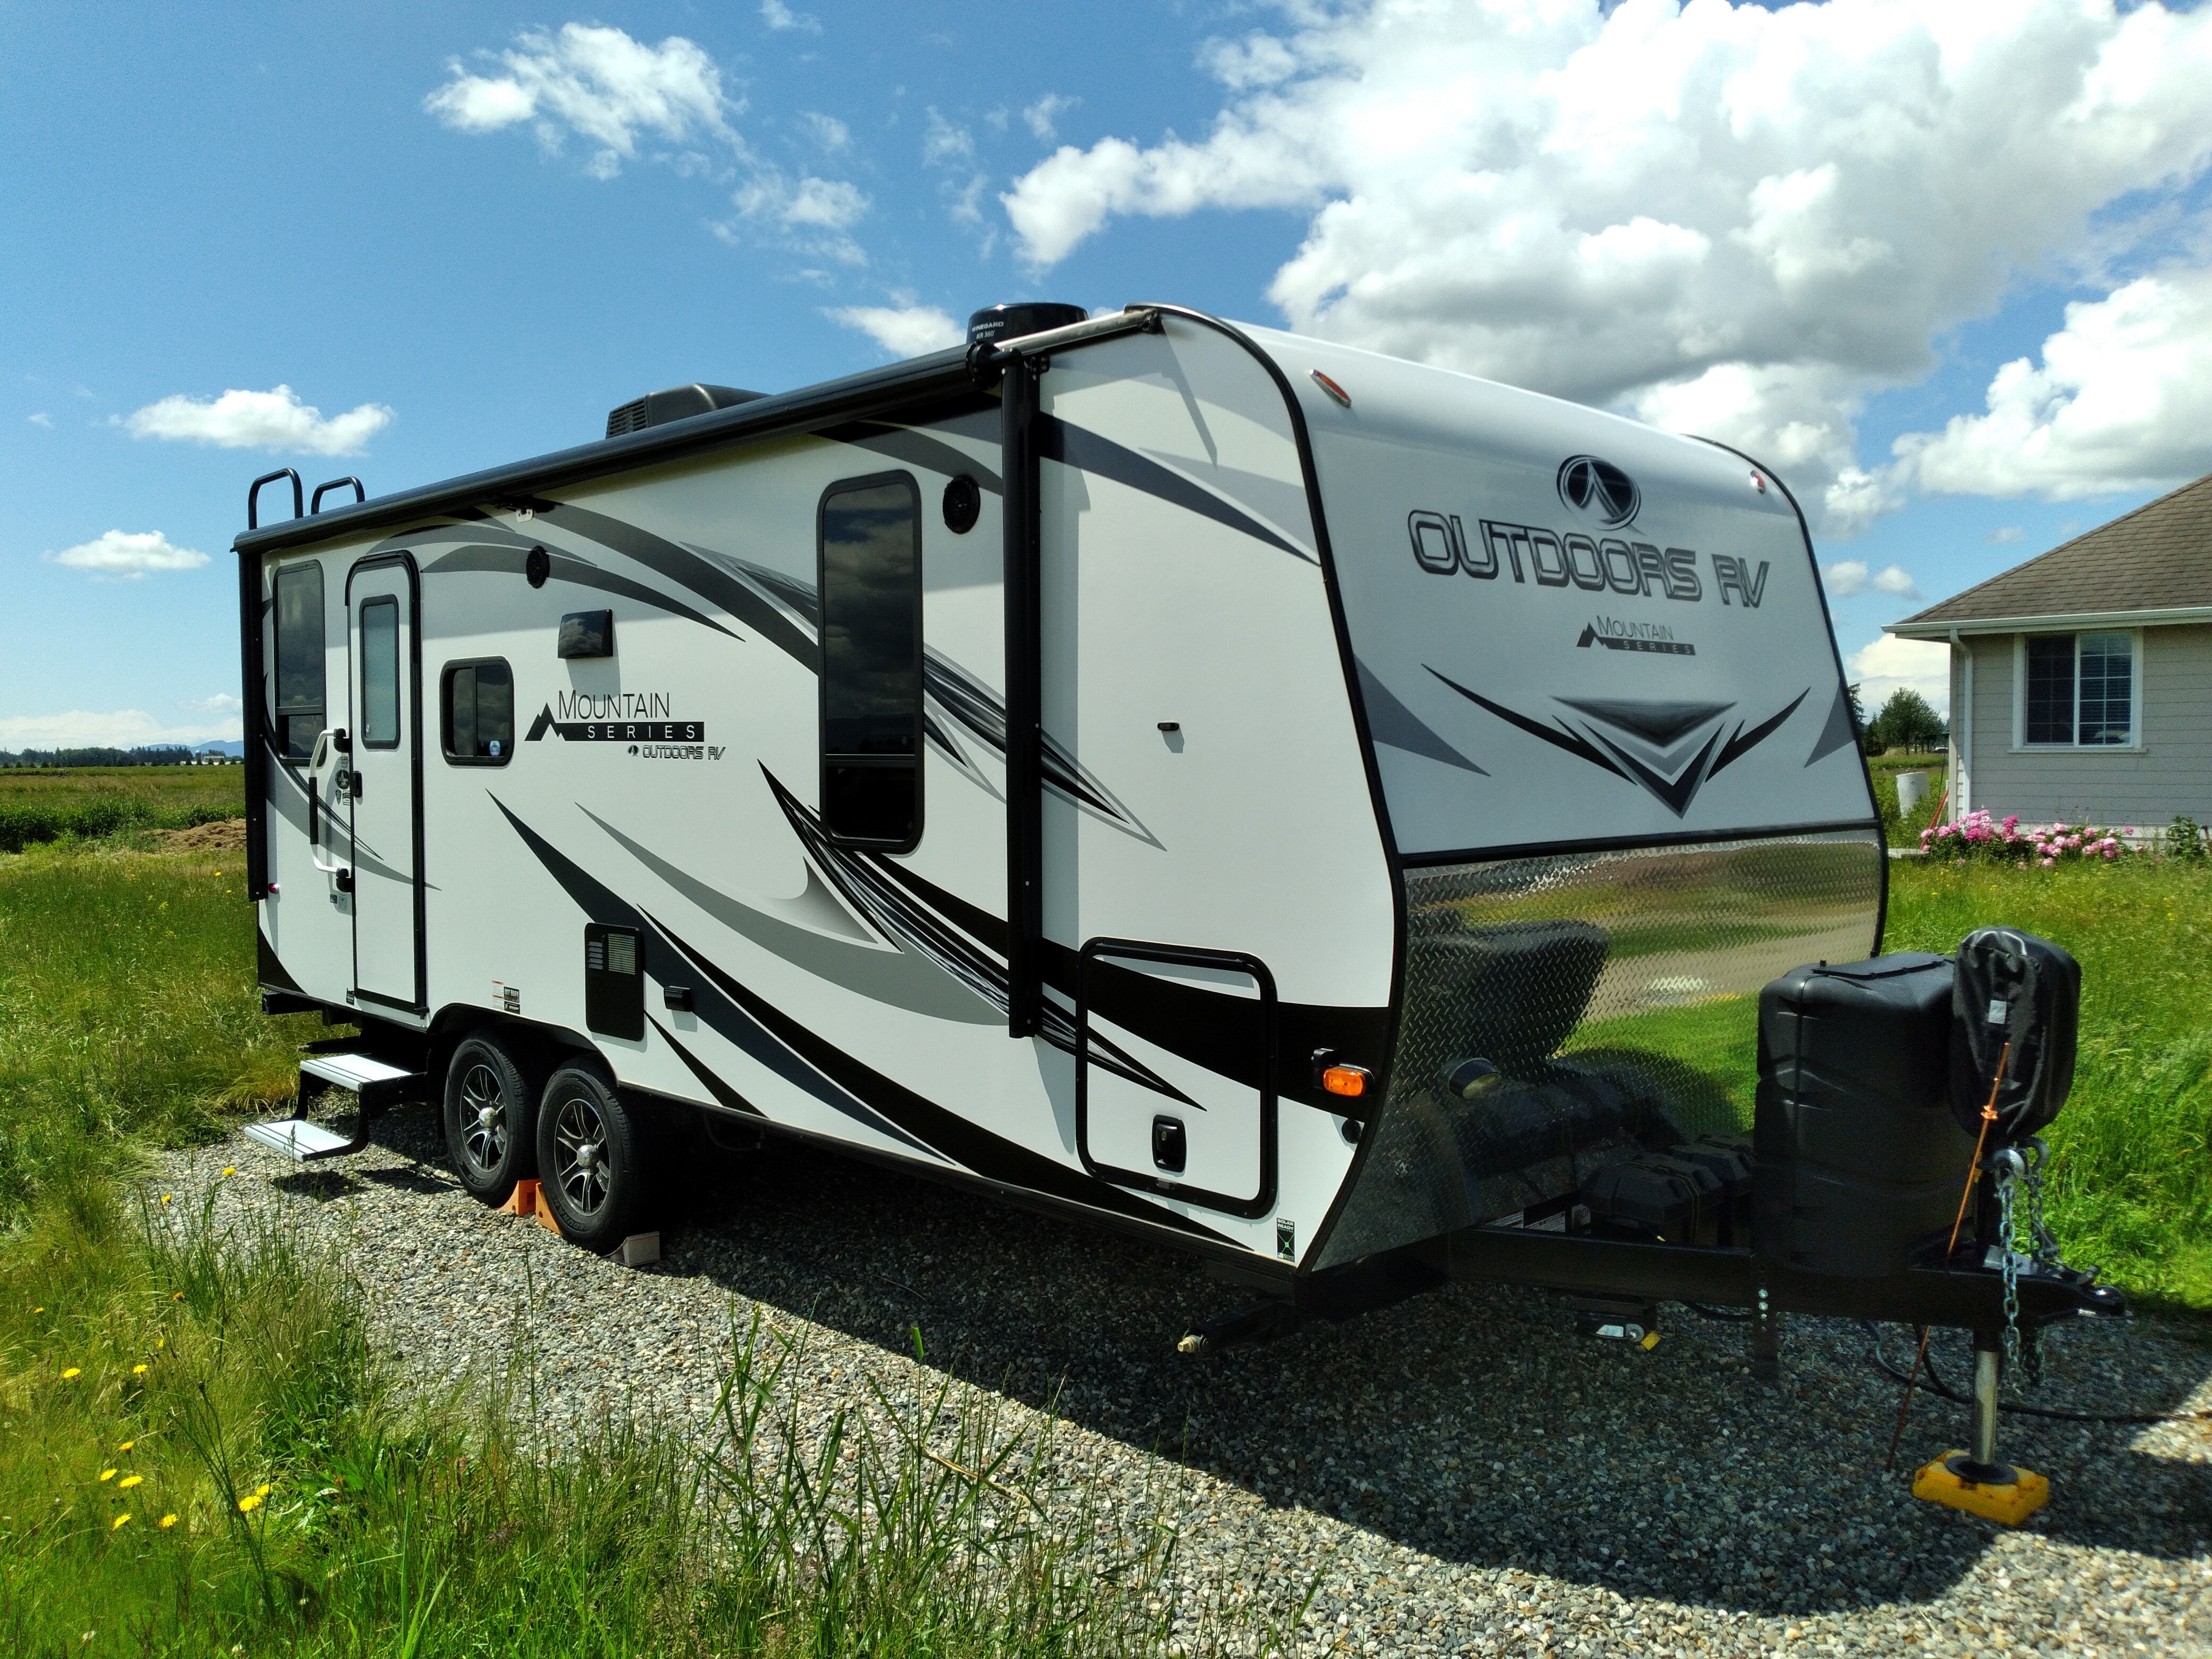 Photo Used 2020 Outdoors Rv Manufacturing Travel Trailer RV  $31500